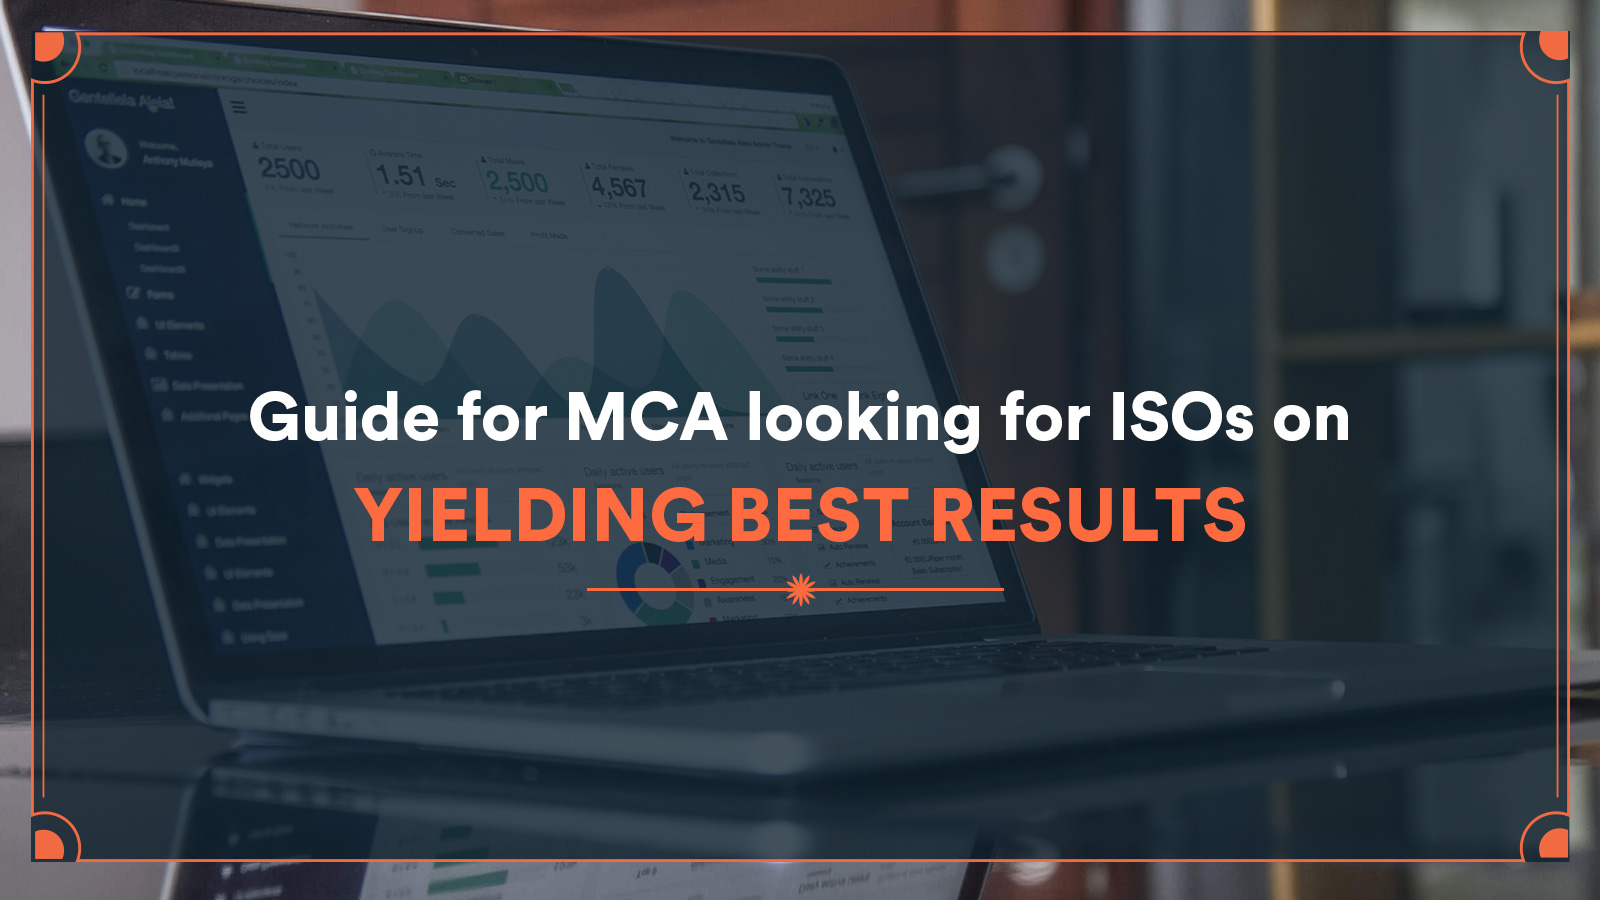 MCA looking for ISOs